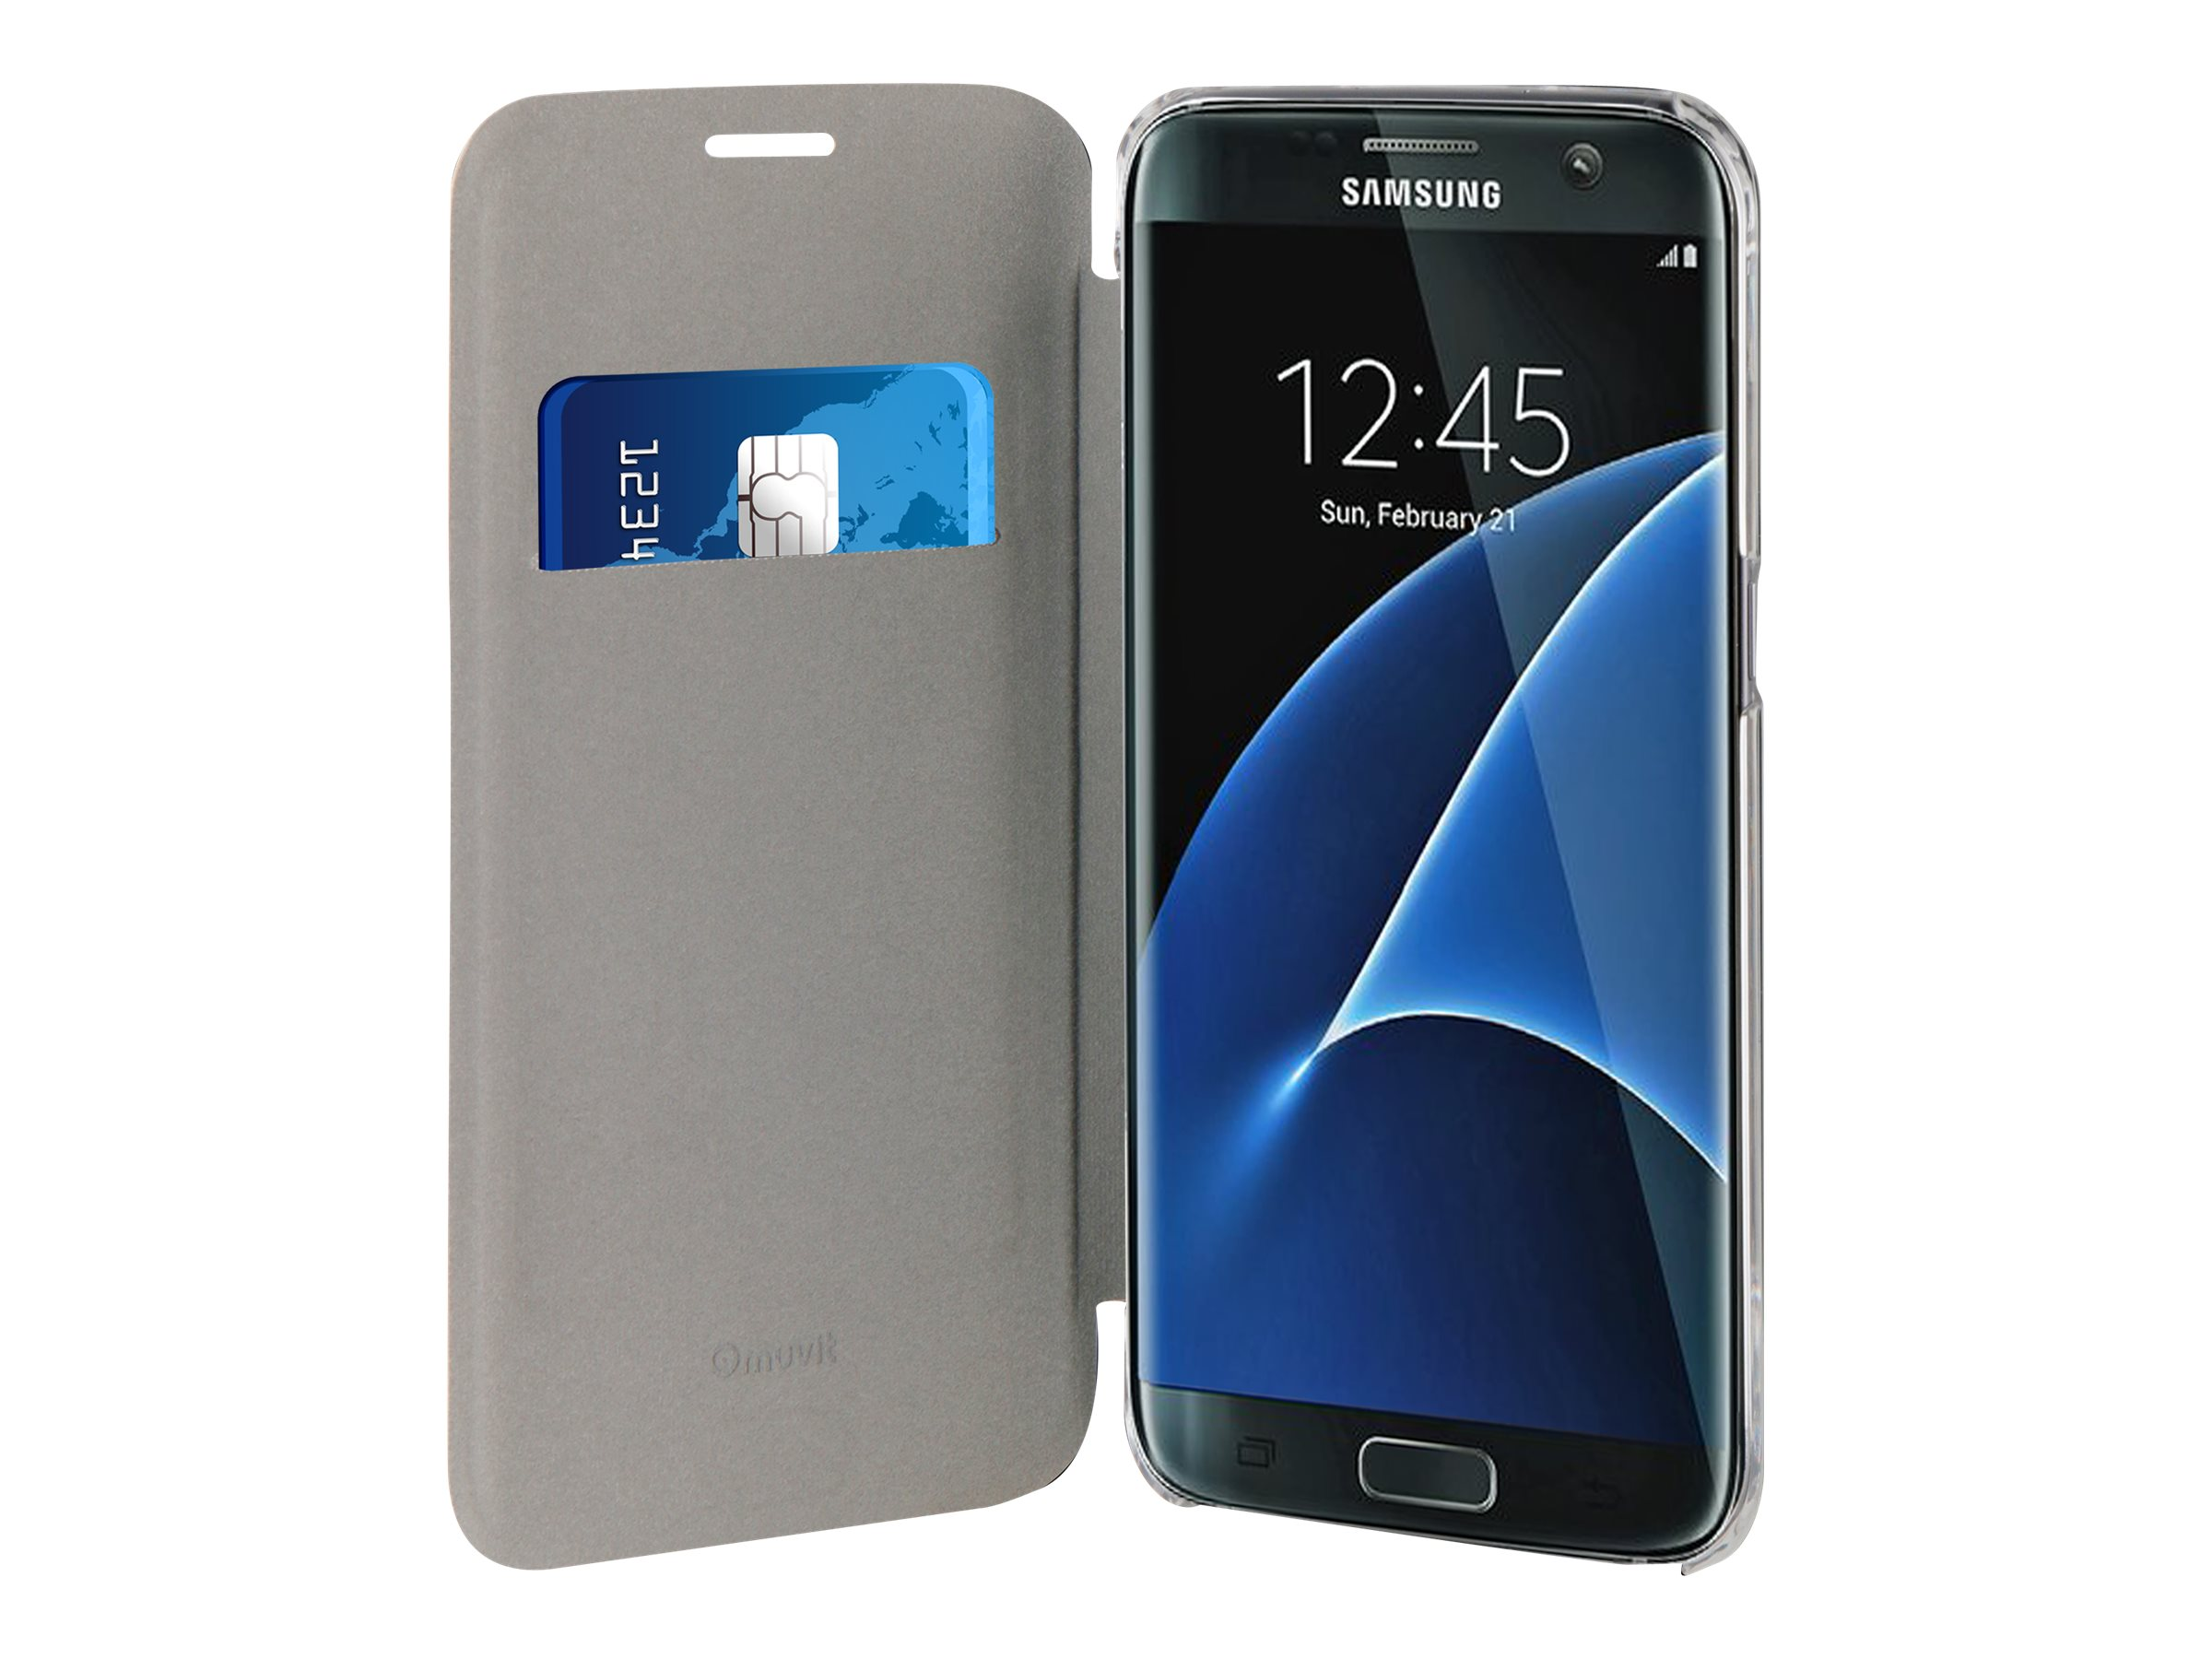 Muvit Folio - Protection à rabat pour Samsung Galaxy S7 edge - or